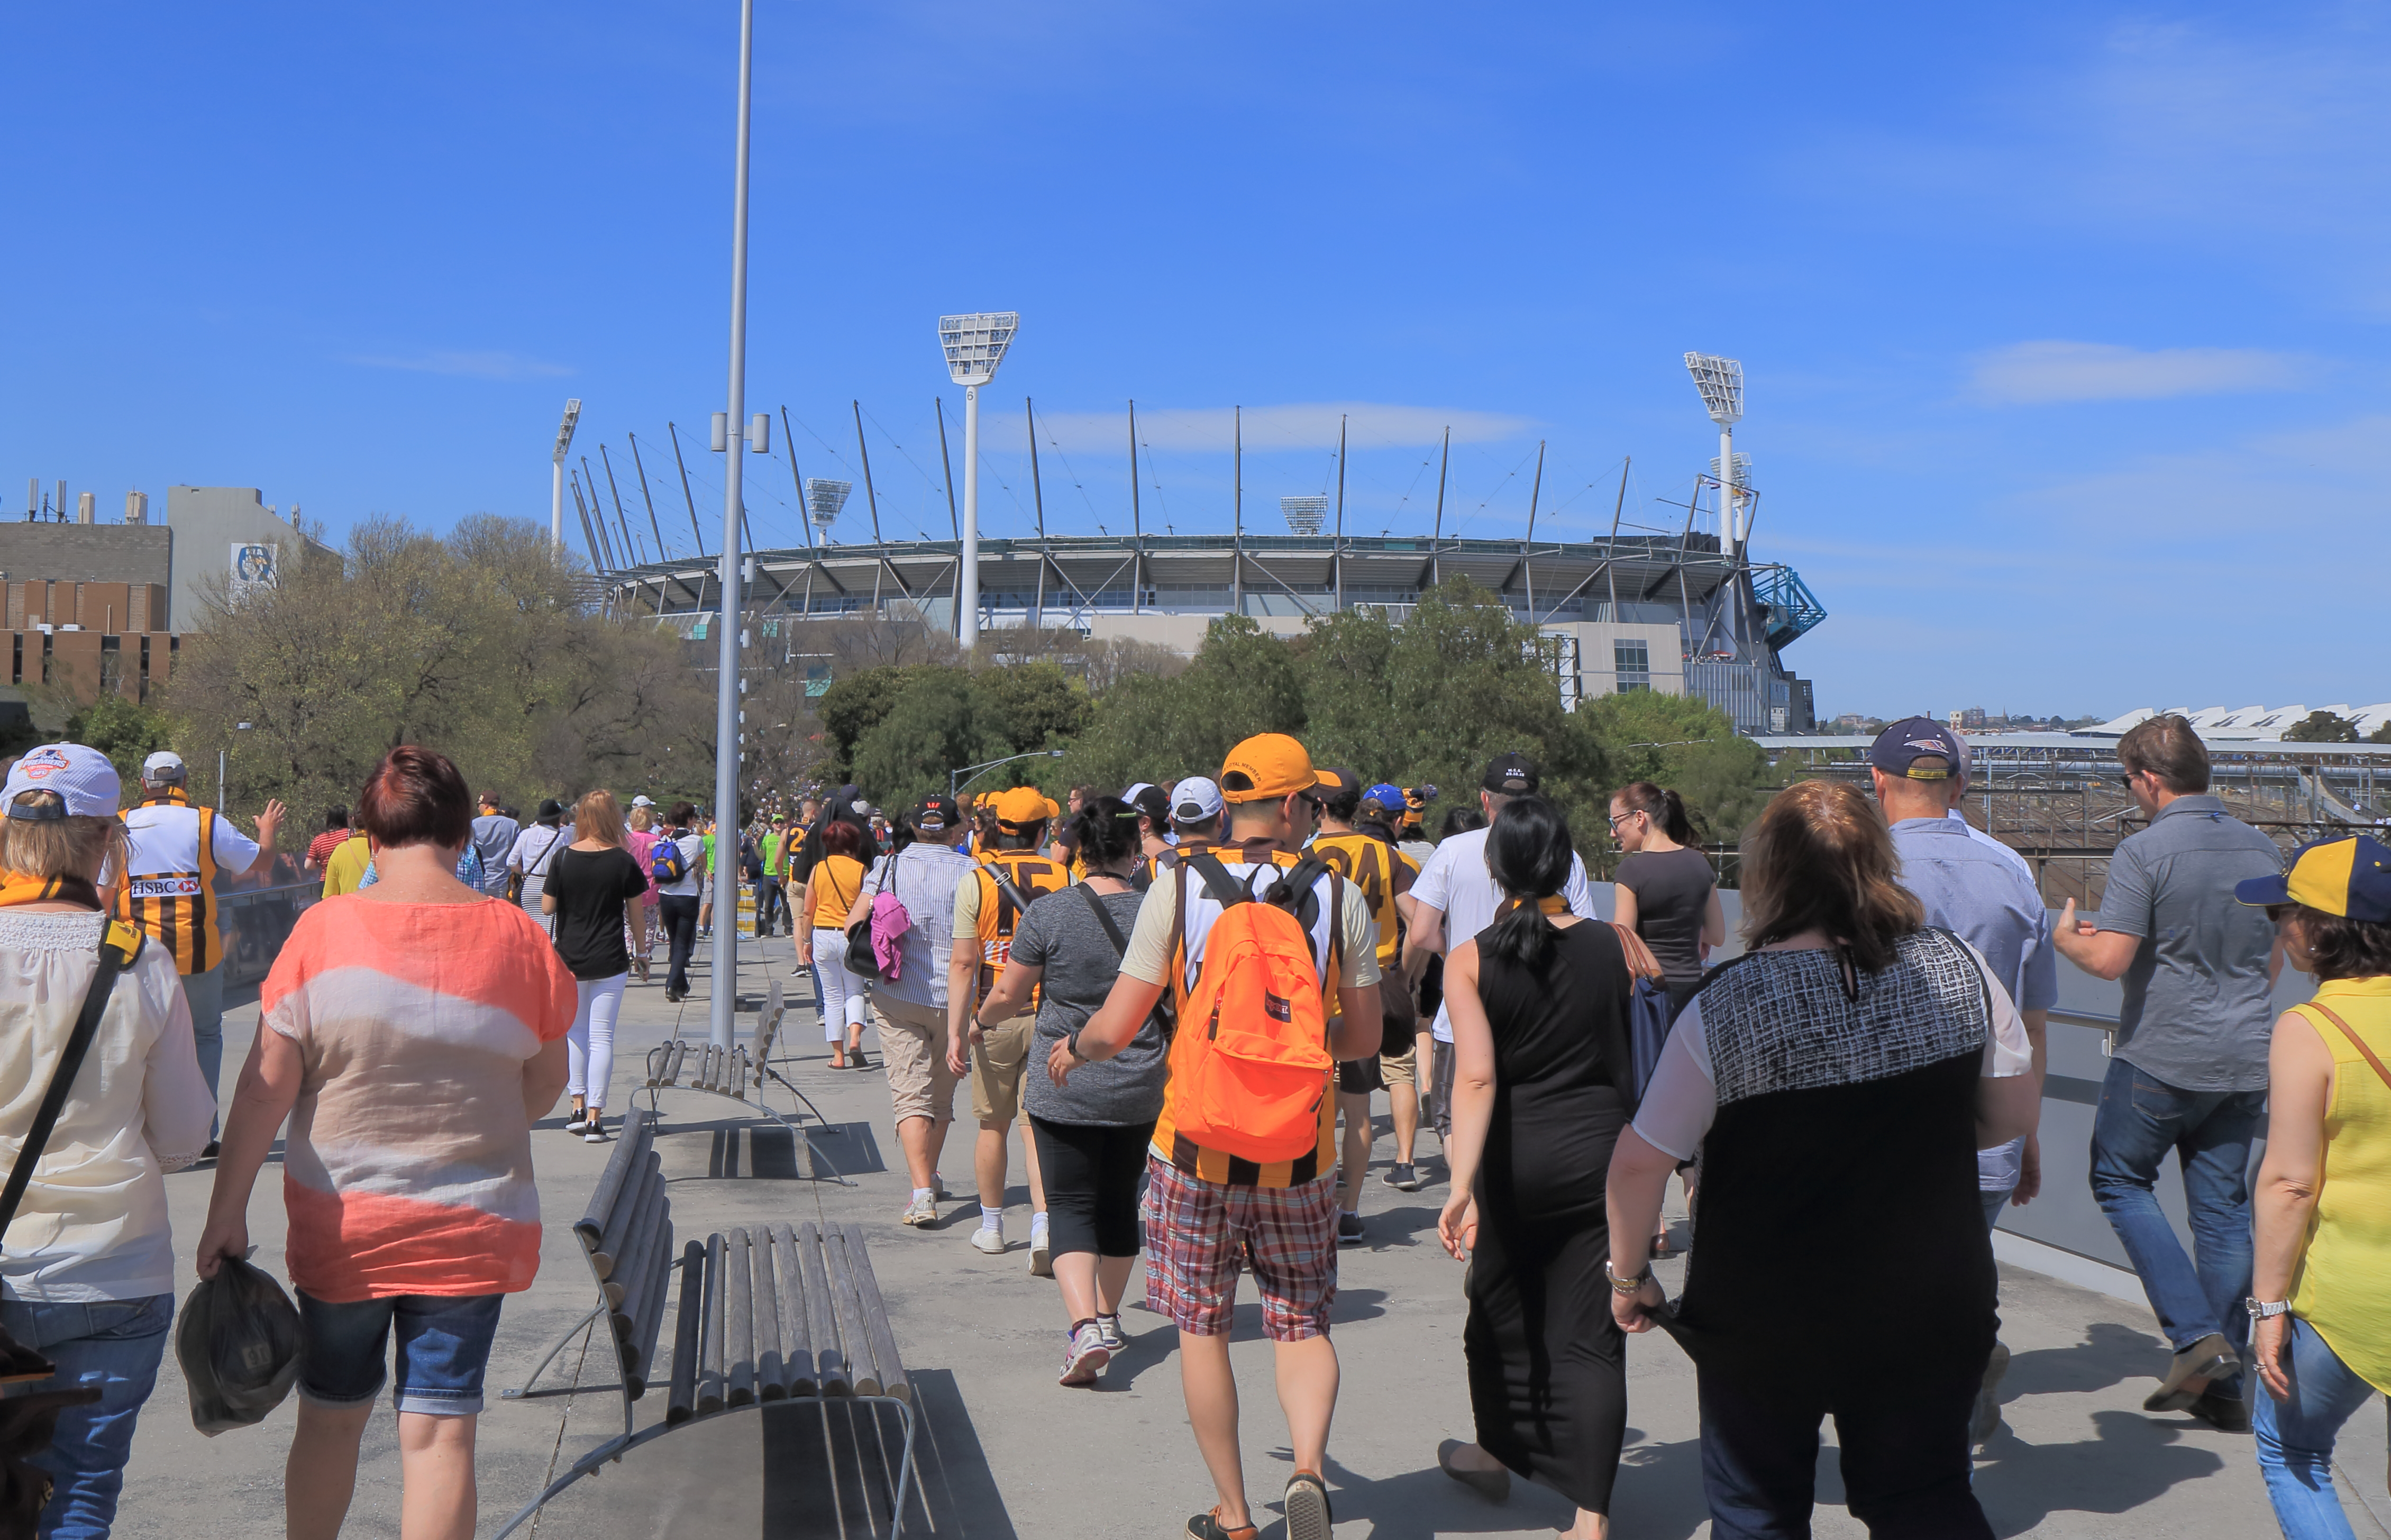 People visit the MCG for an AFL game.